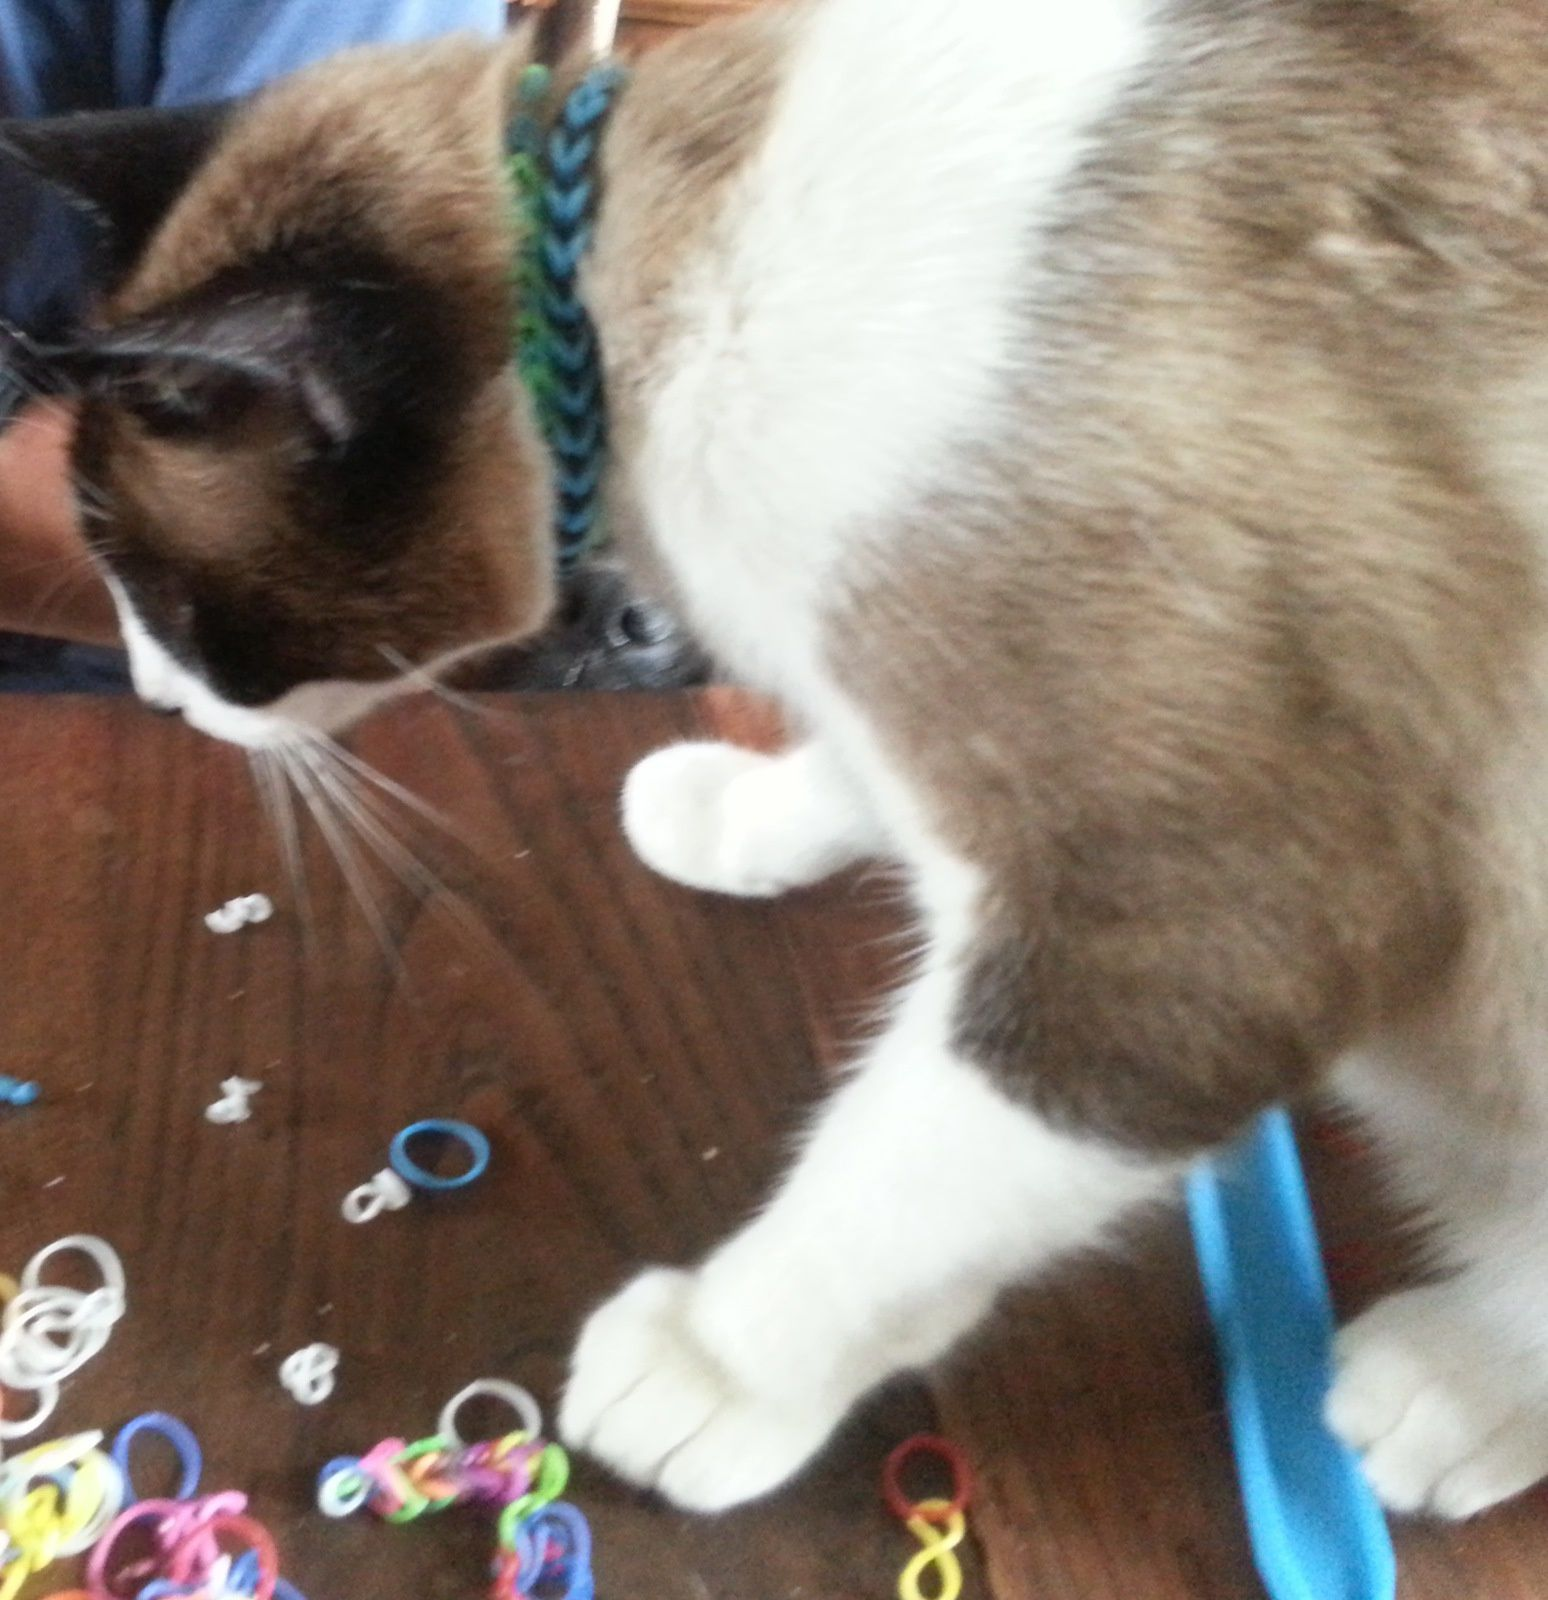 Clarence le chat et les Rainbow loom